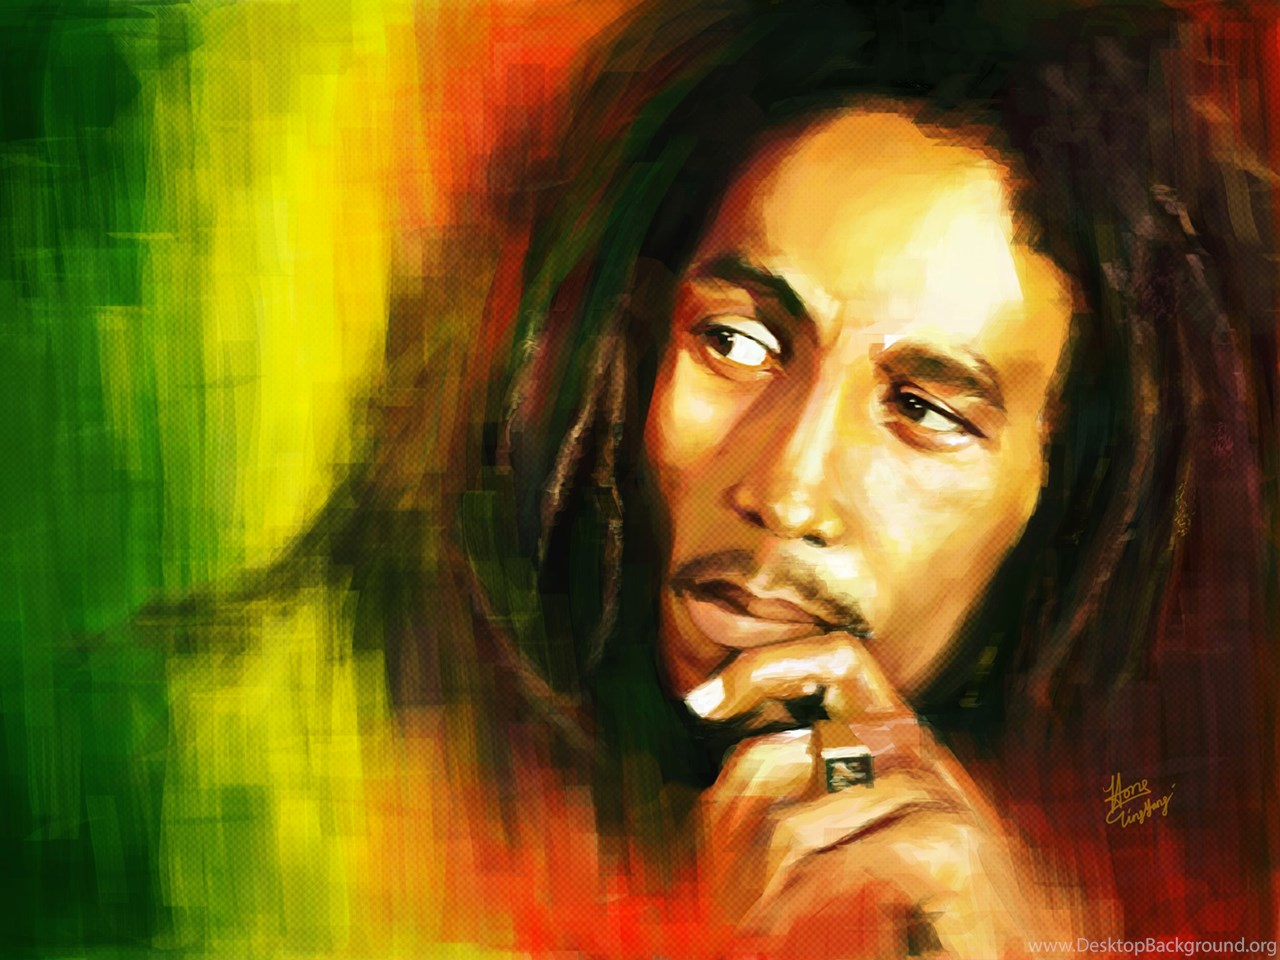 the unrequited life of bob marley Catch a fire: the life of bob marley 48 out of 5 based on 0 ratings 13 reviews.